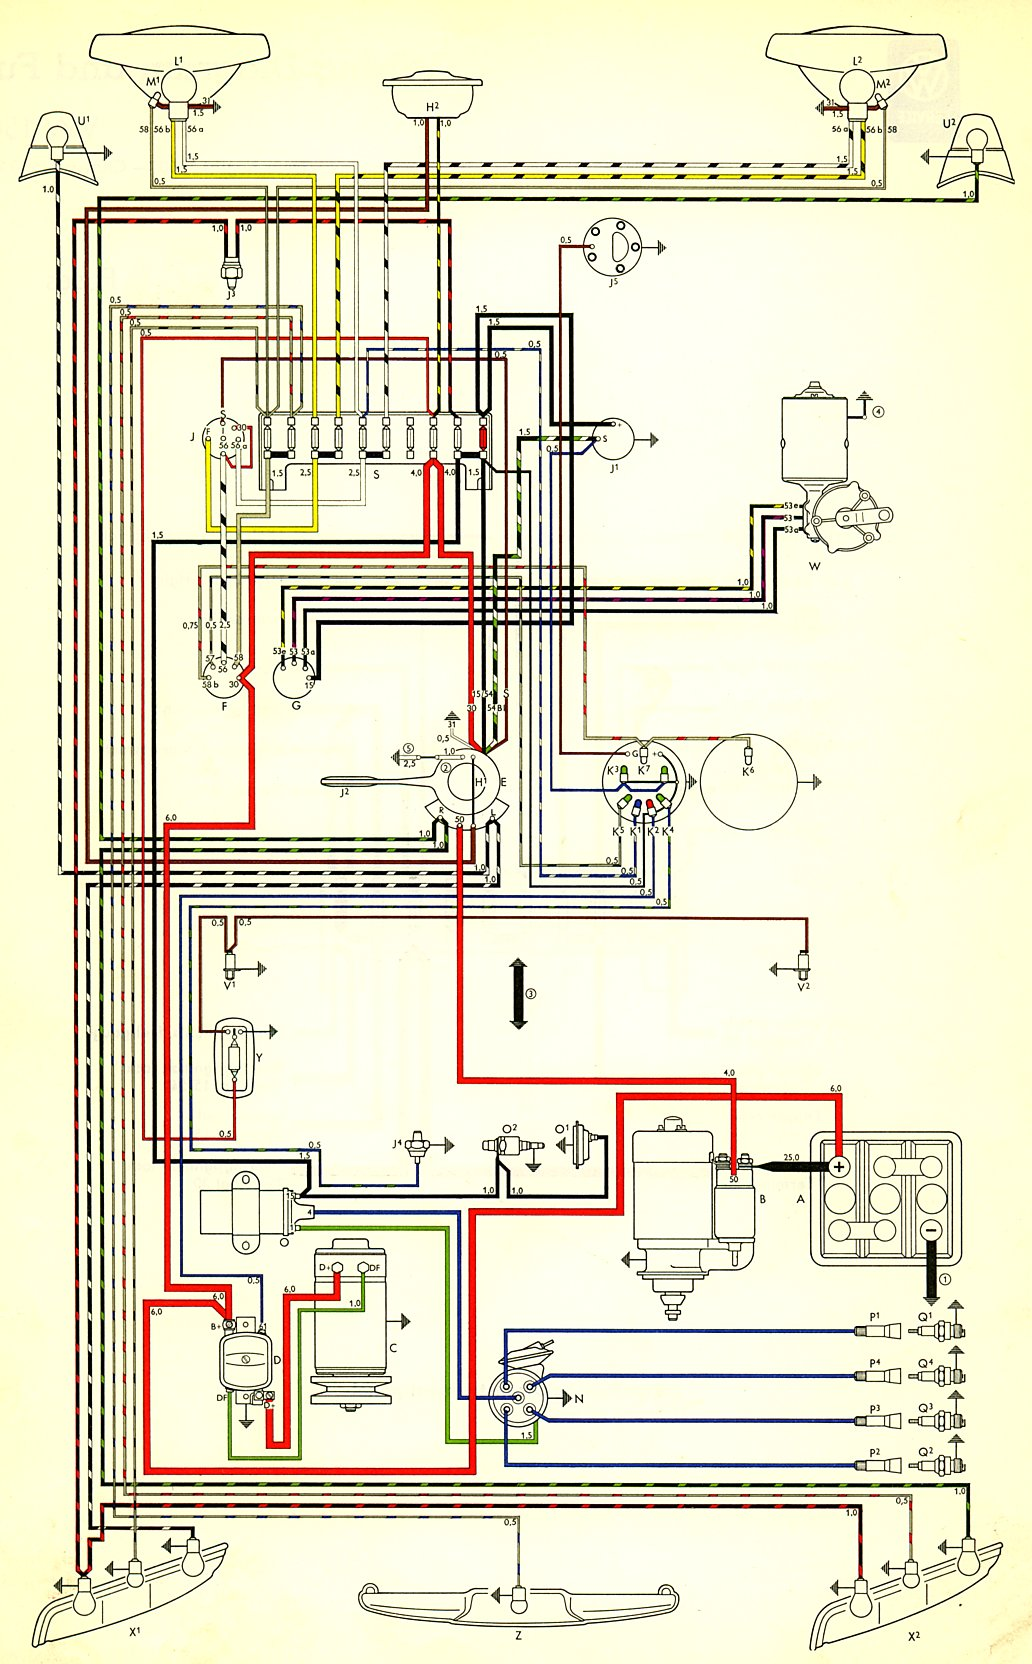 69 vw bug wiring diagram 66 vw bug wire diagram of #12